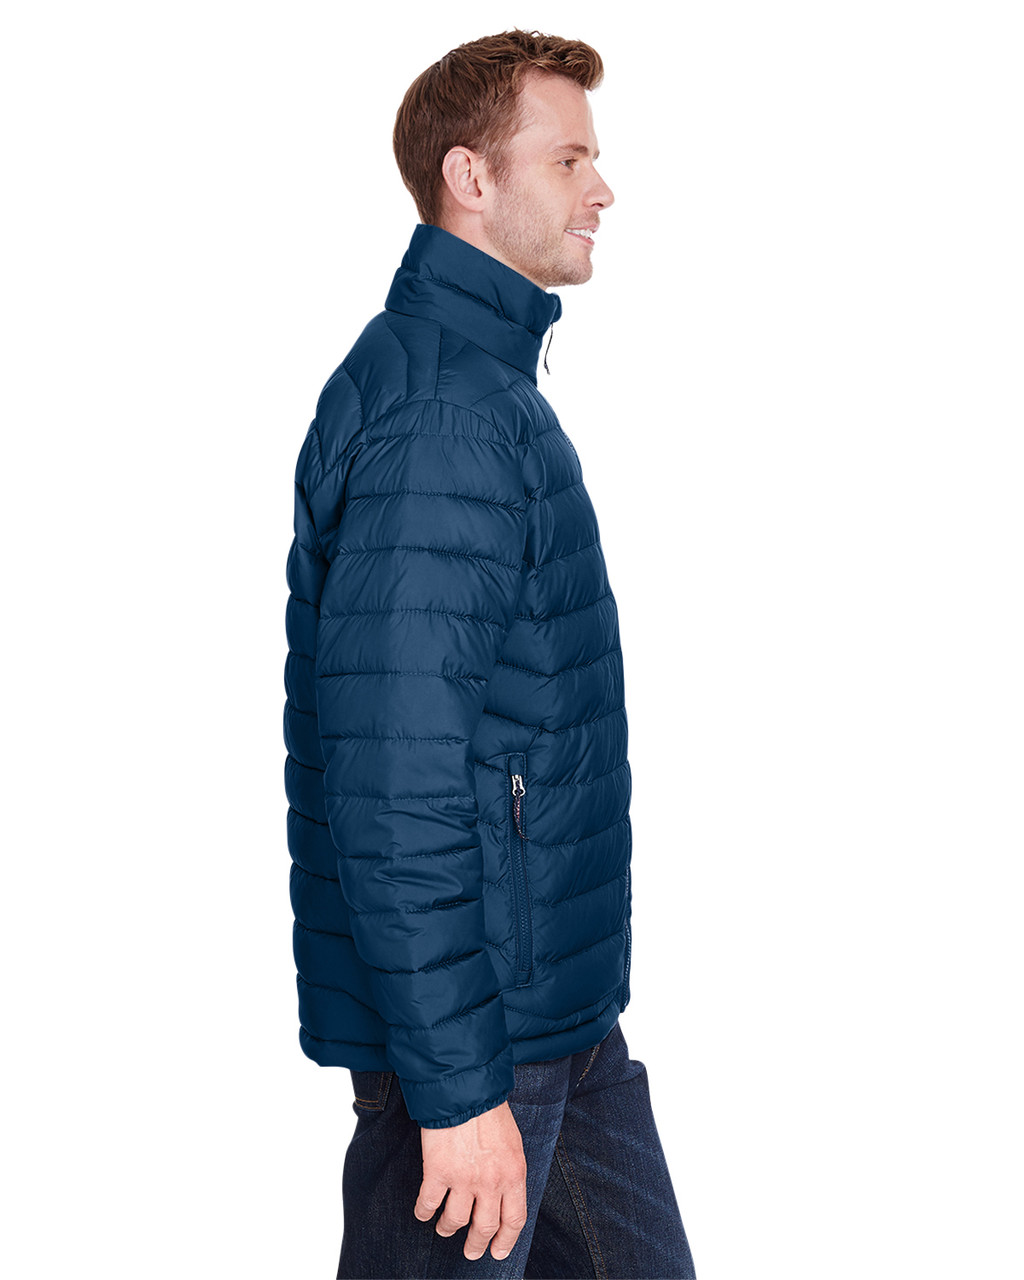 Collegiate Navy - Side, 1698001 Columbia Men's Powder Lite™ Jacket | Blankclothing.ca